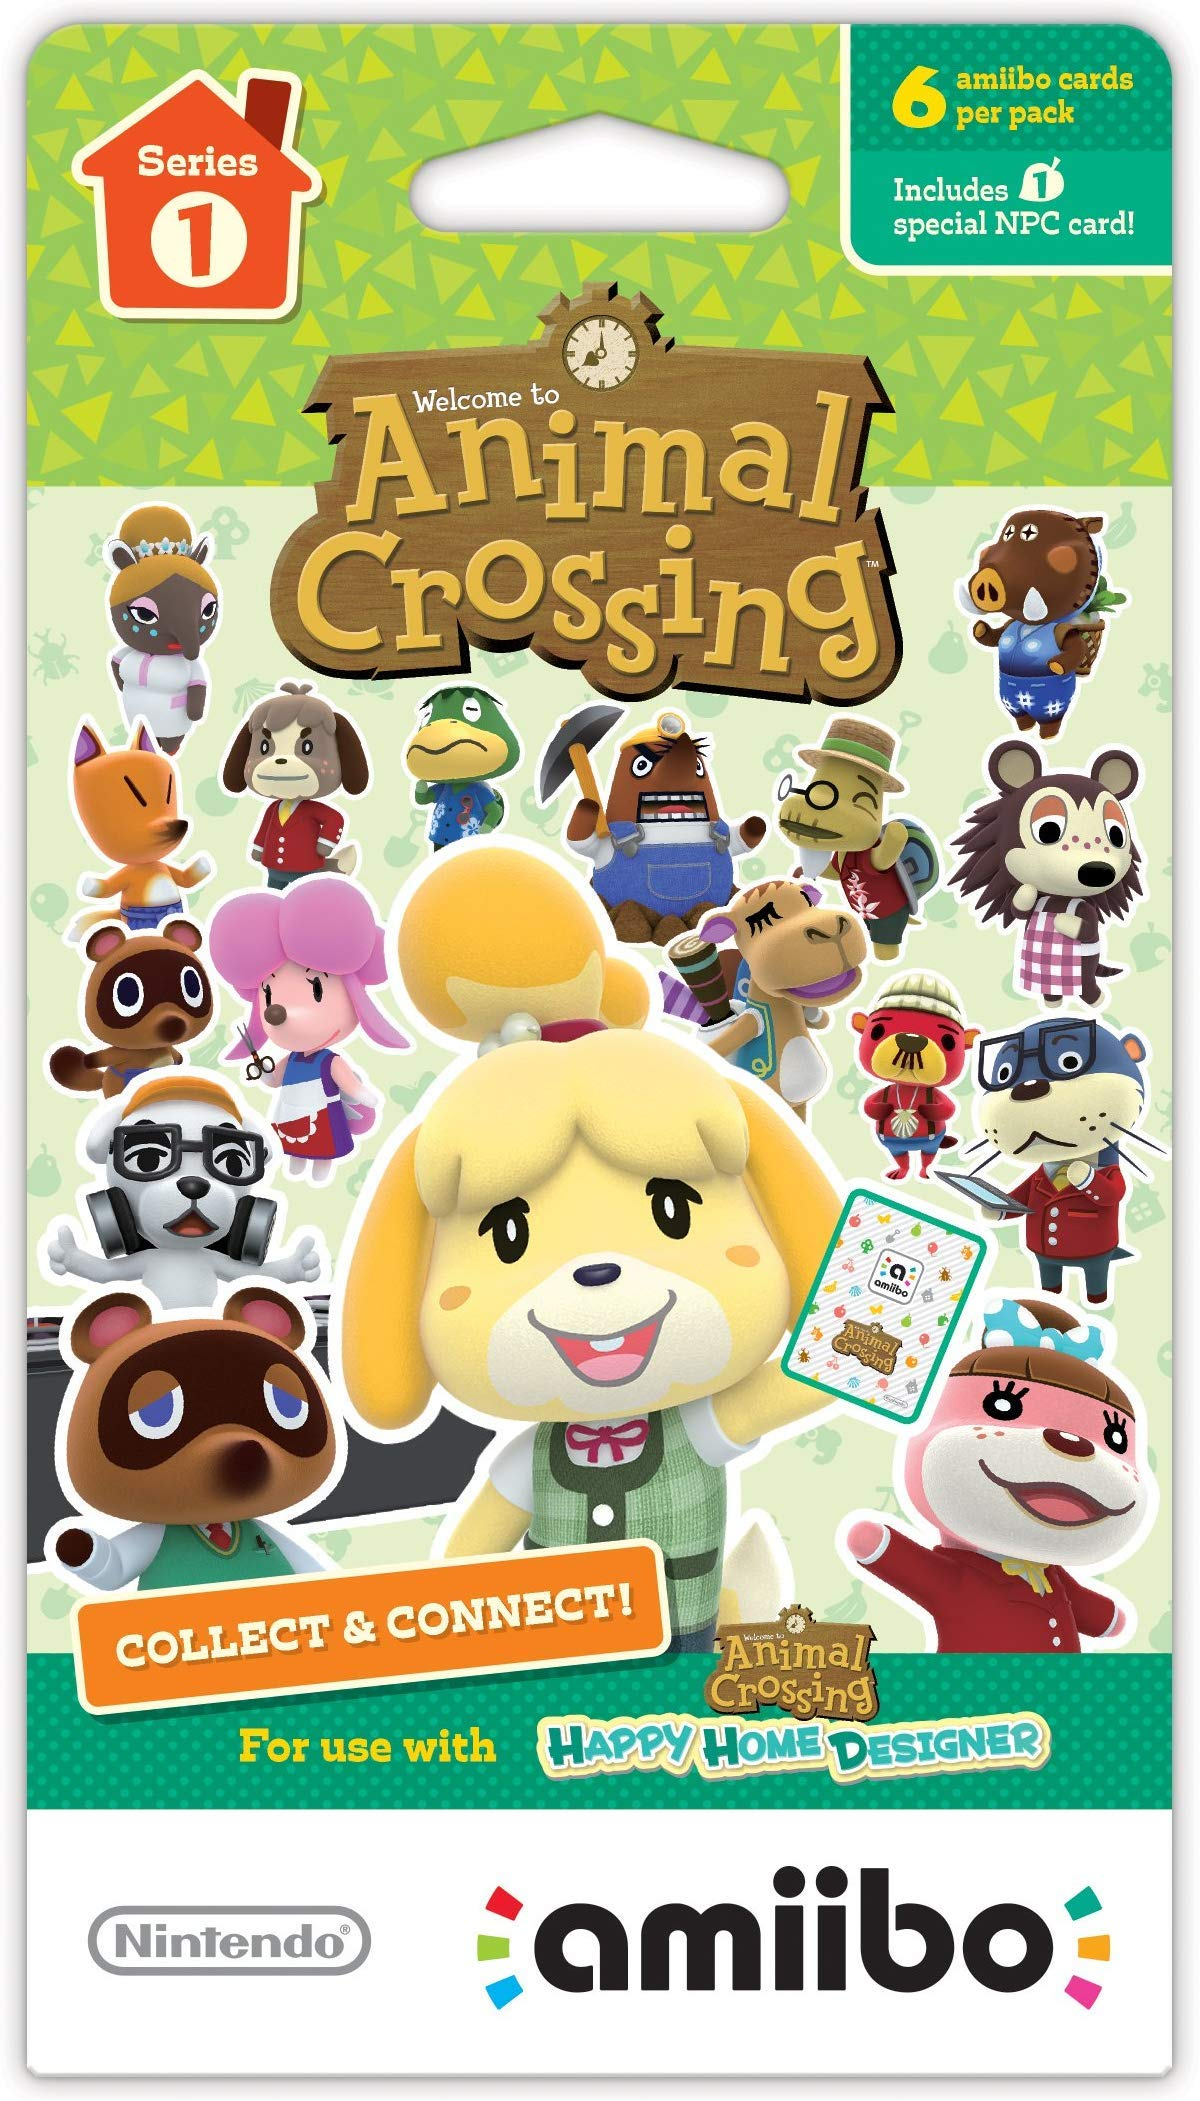 Nintendo Animal Crossing amiibo Cards Series 1, 2, 3, 4 for Nintendo Wii U and 3DS, 1-Pack (6 Cards/Pack) (Bundle) Includes 24 Cards Total by Nintendo (Image #2)